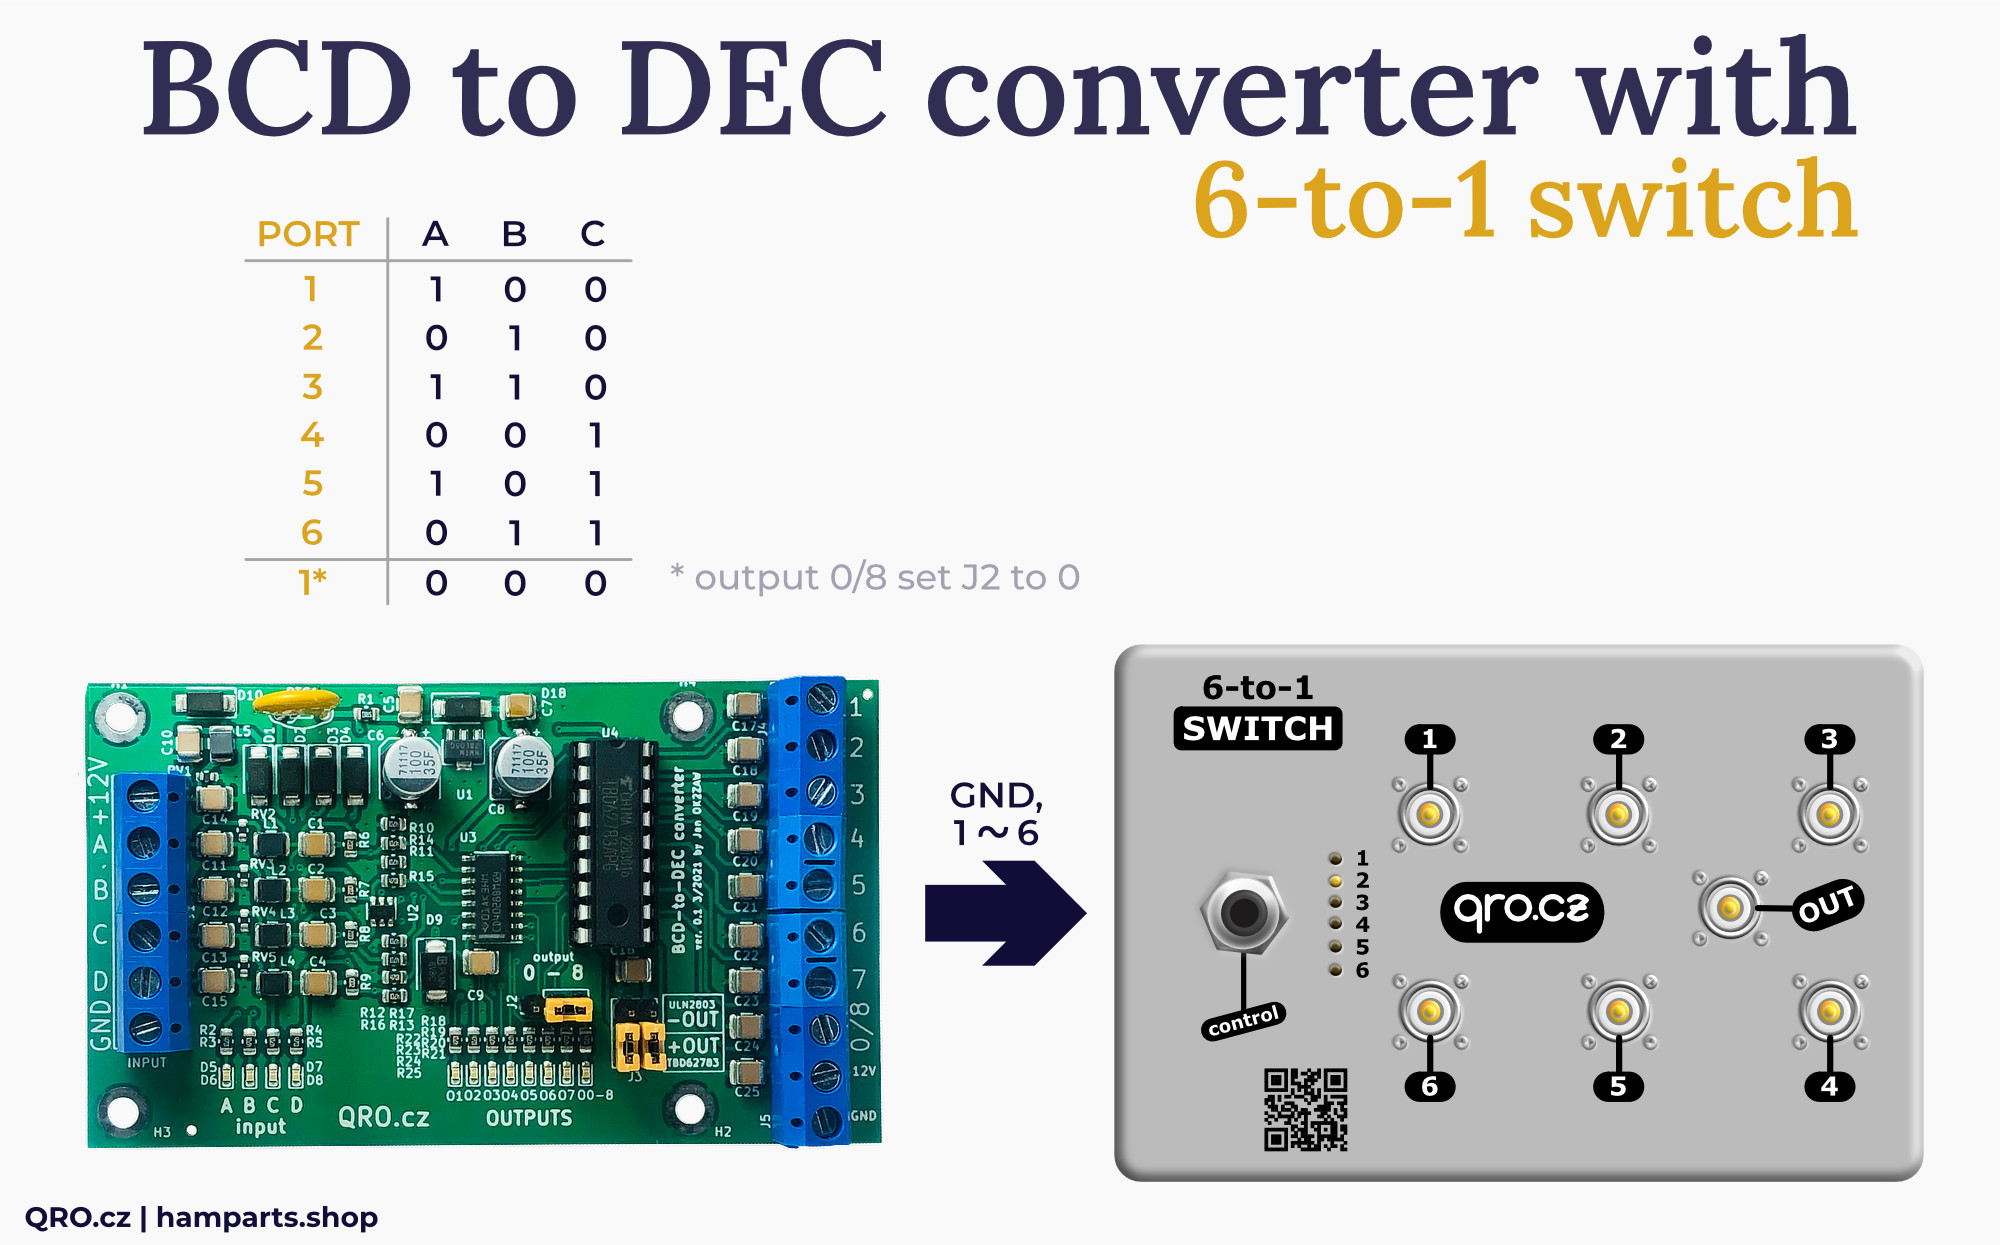 BCD to DEC converter with 6 to 1 antenna switch by qro.cz hamparts.shop